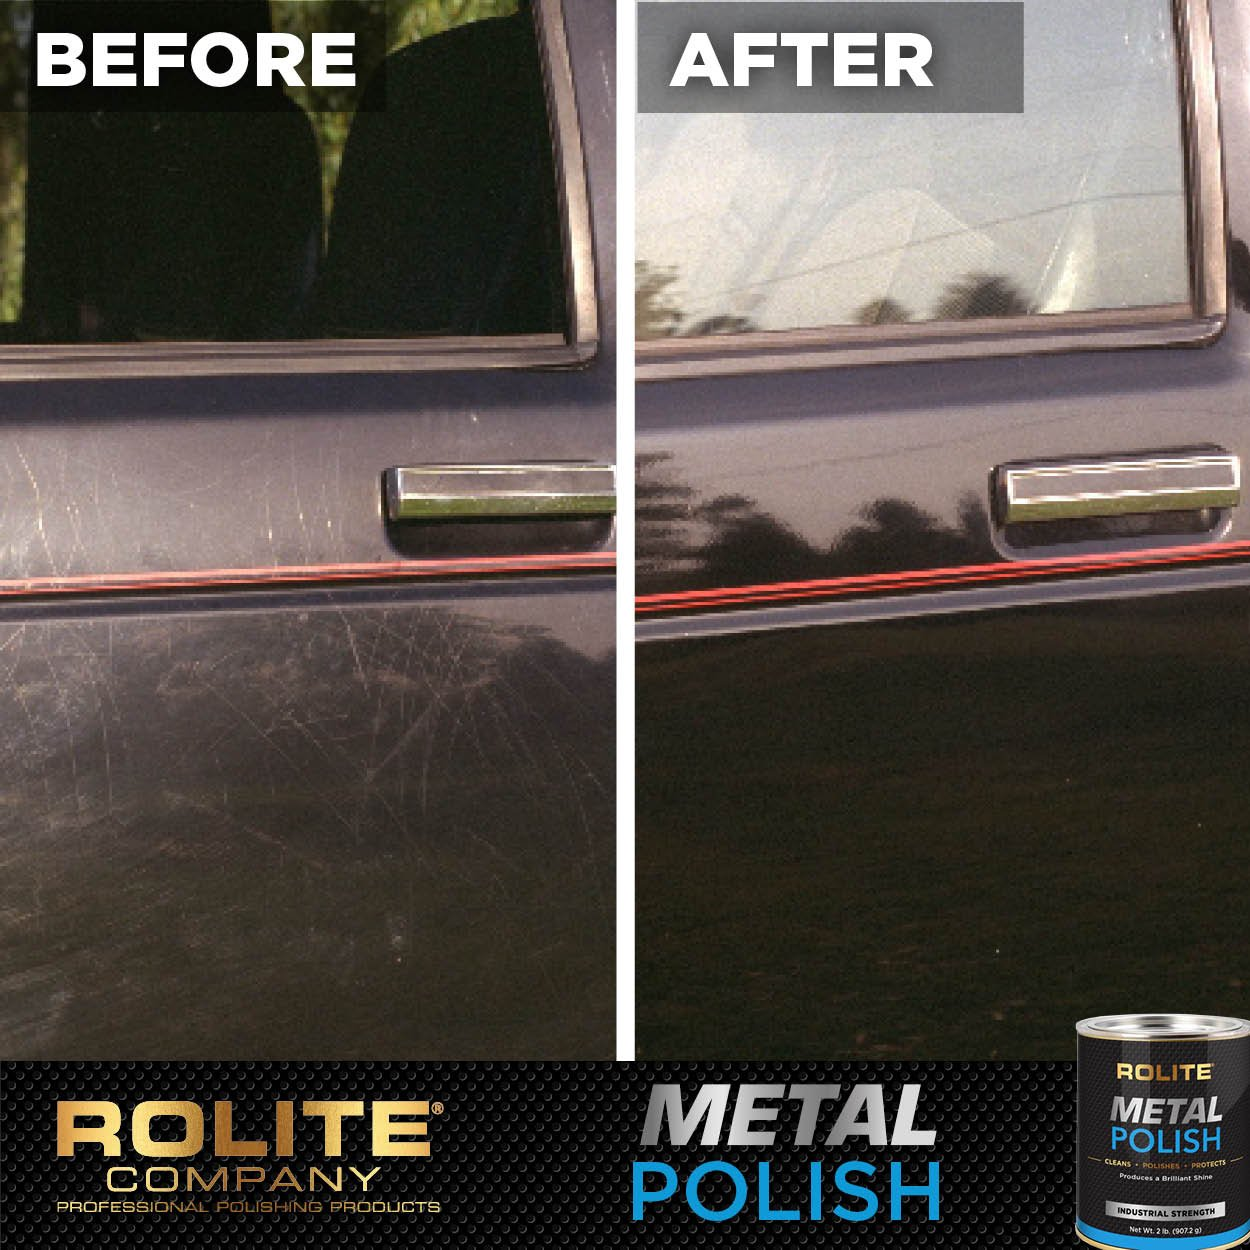 Rolite Metal Polish Paste (1lb) for Aluminum, Brass, Bronze, Chrome, Copper, Gold, Nickel and Stainless Steel by Rolite (Image #4)